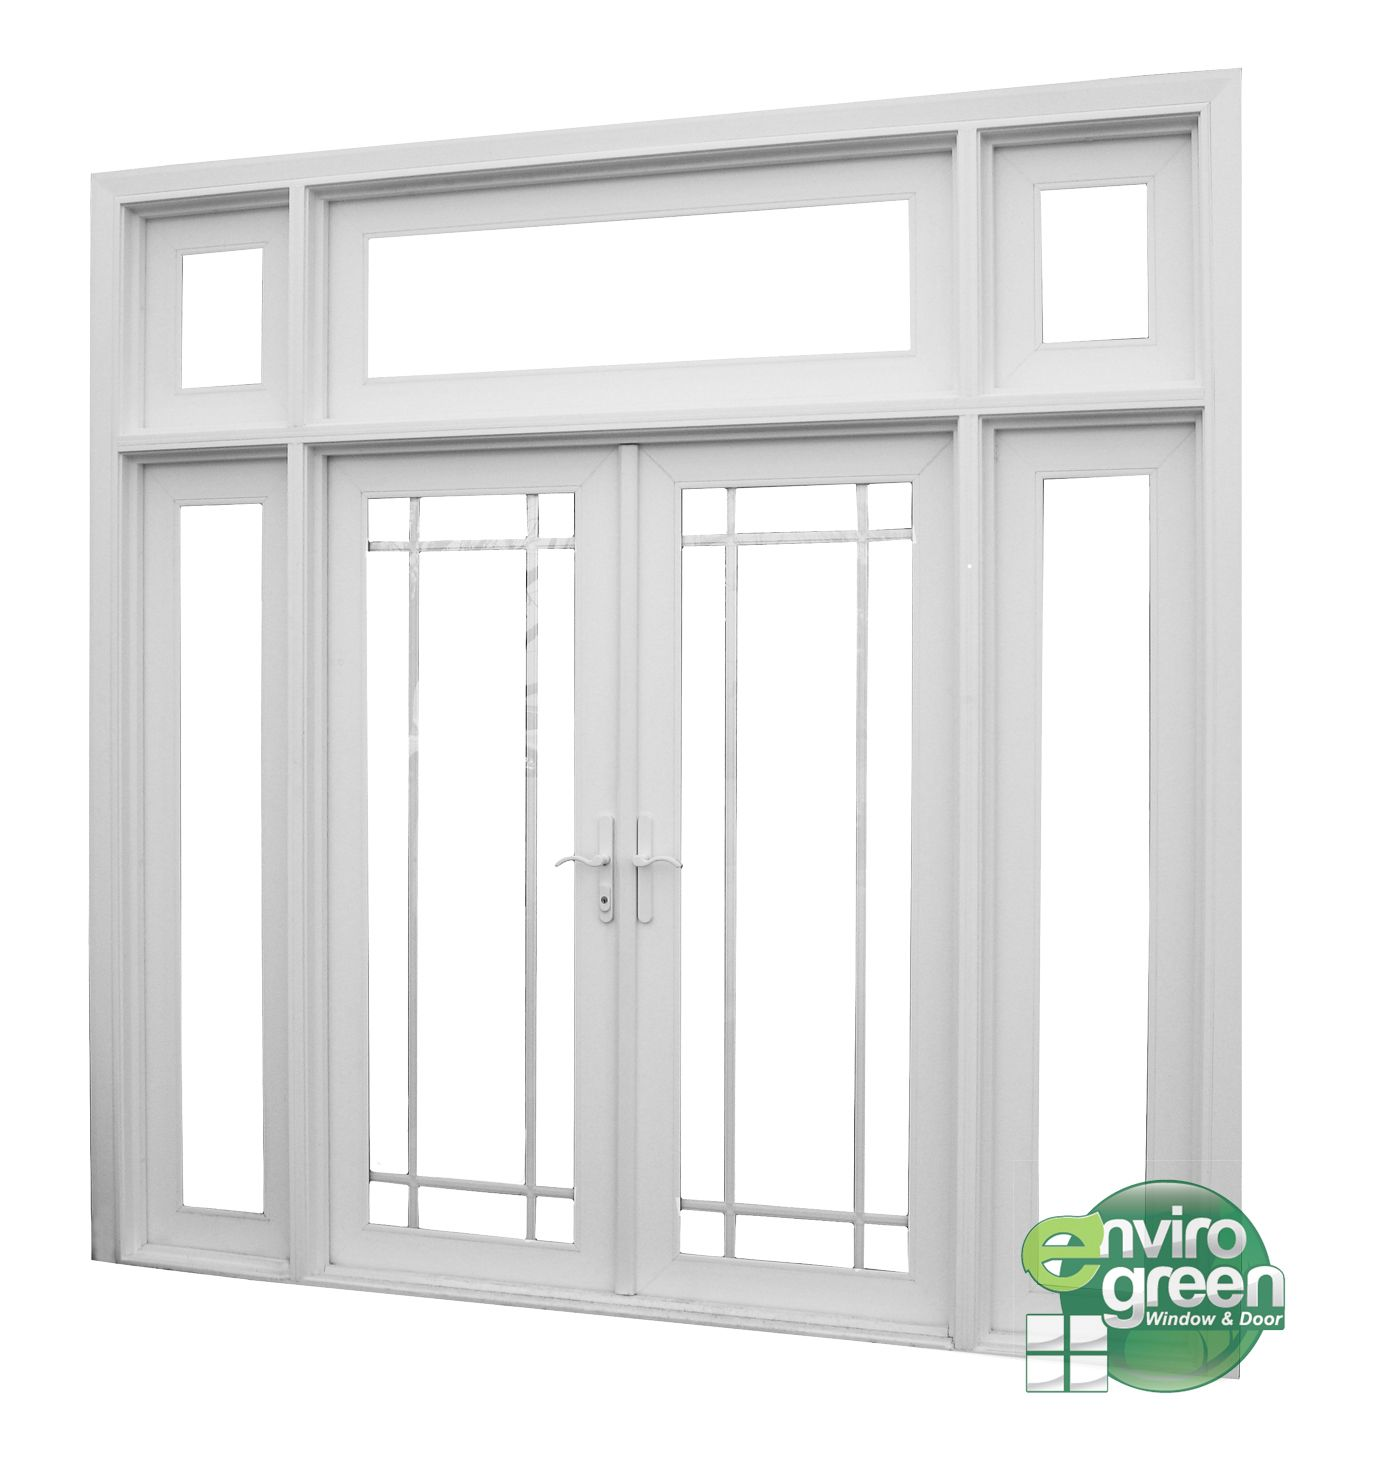 Single Patio Door with Side Lights | French Door Envirogreen Windows u0026 Doors Duarte CaliforniaEnvirogreen .  sc 1 st  Pinterest & Single Patio Door with Side Lights | French Door Envirogreen ... pezcame.com